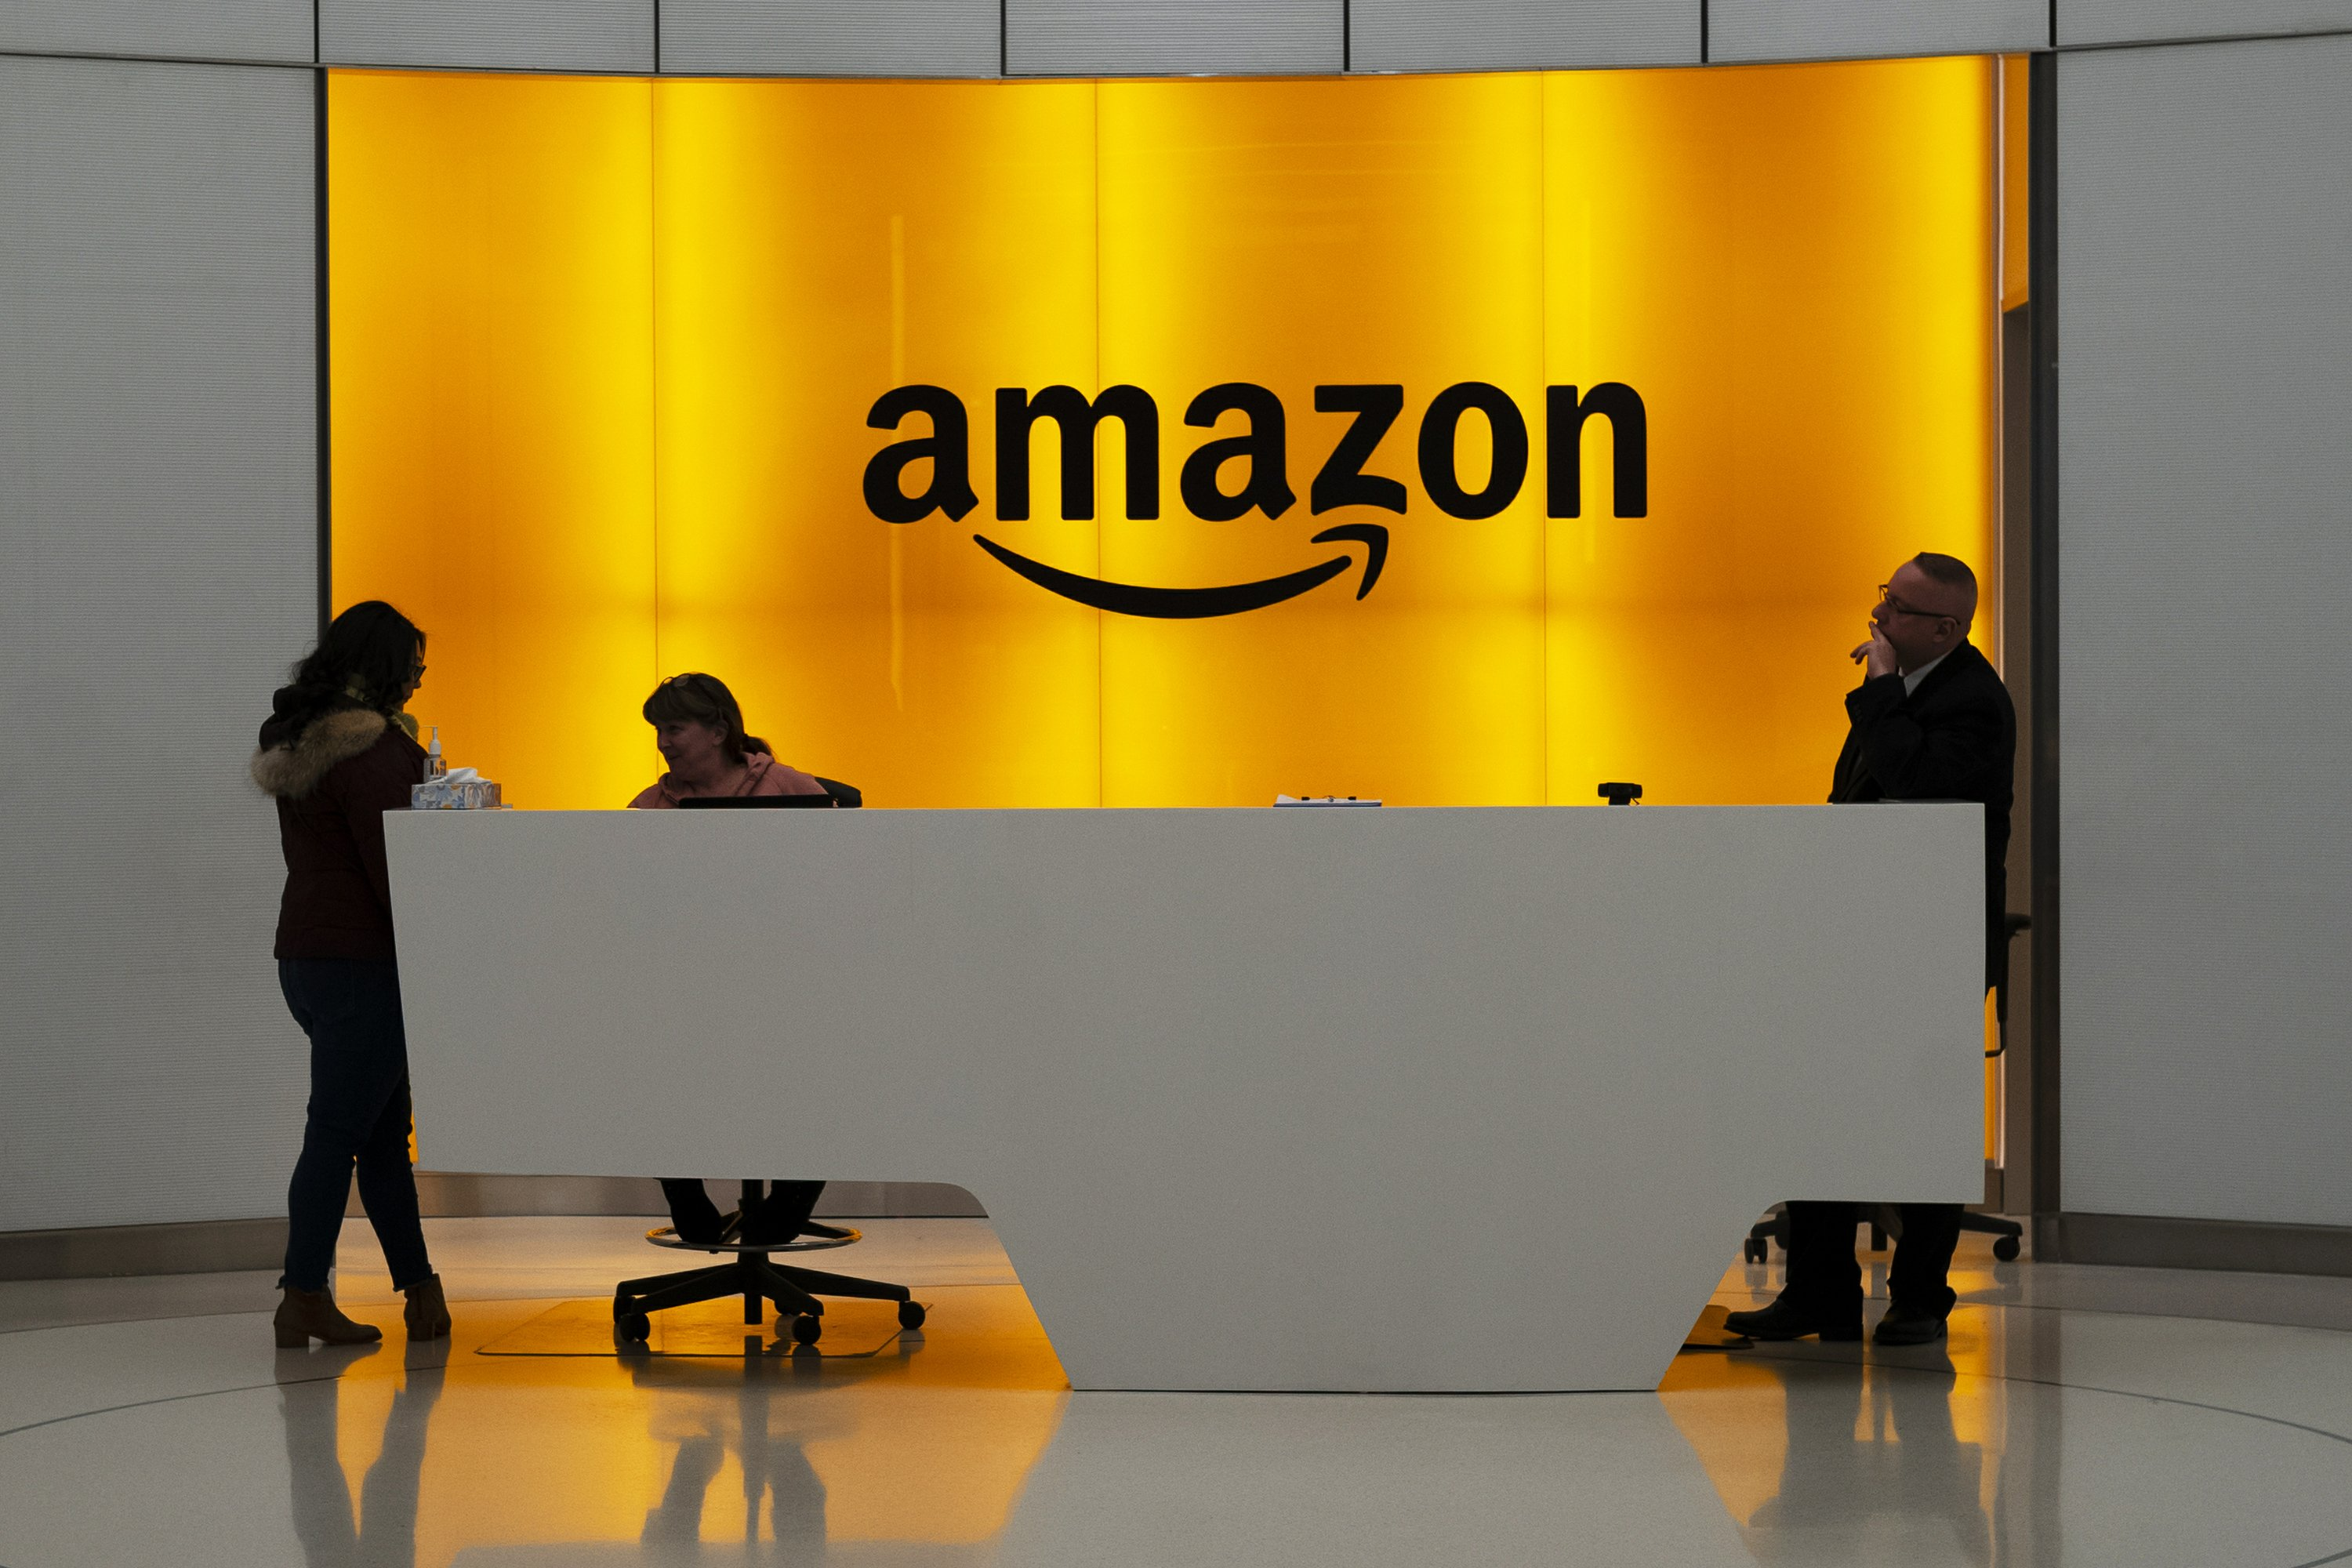 Amazon Follows Facebook to Expand in NYC After Earlier Pullout